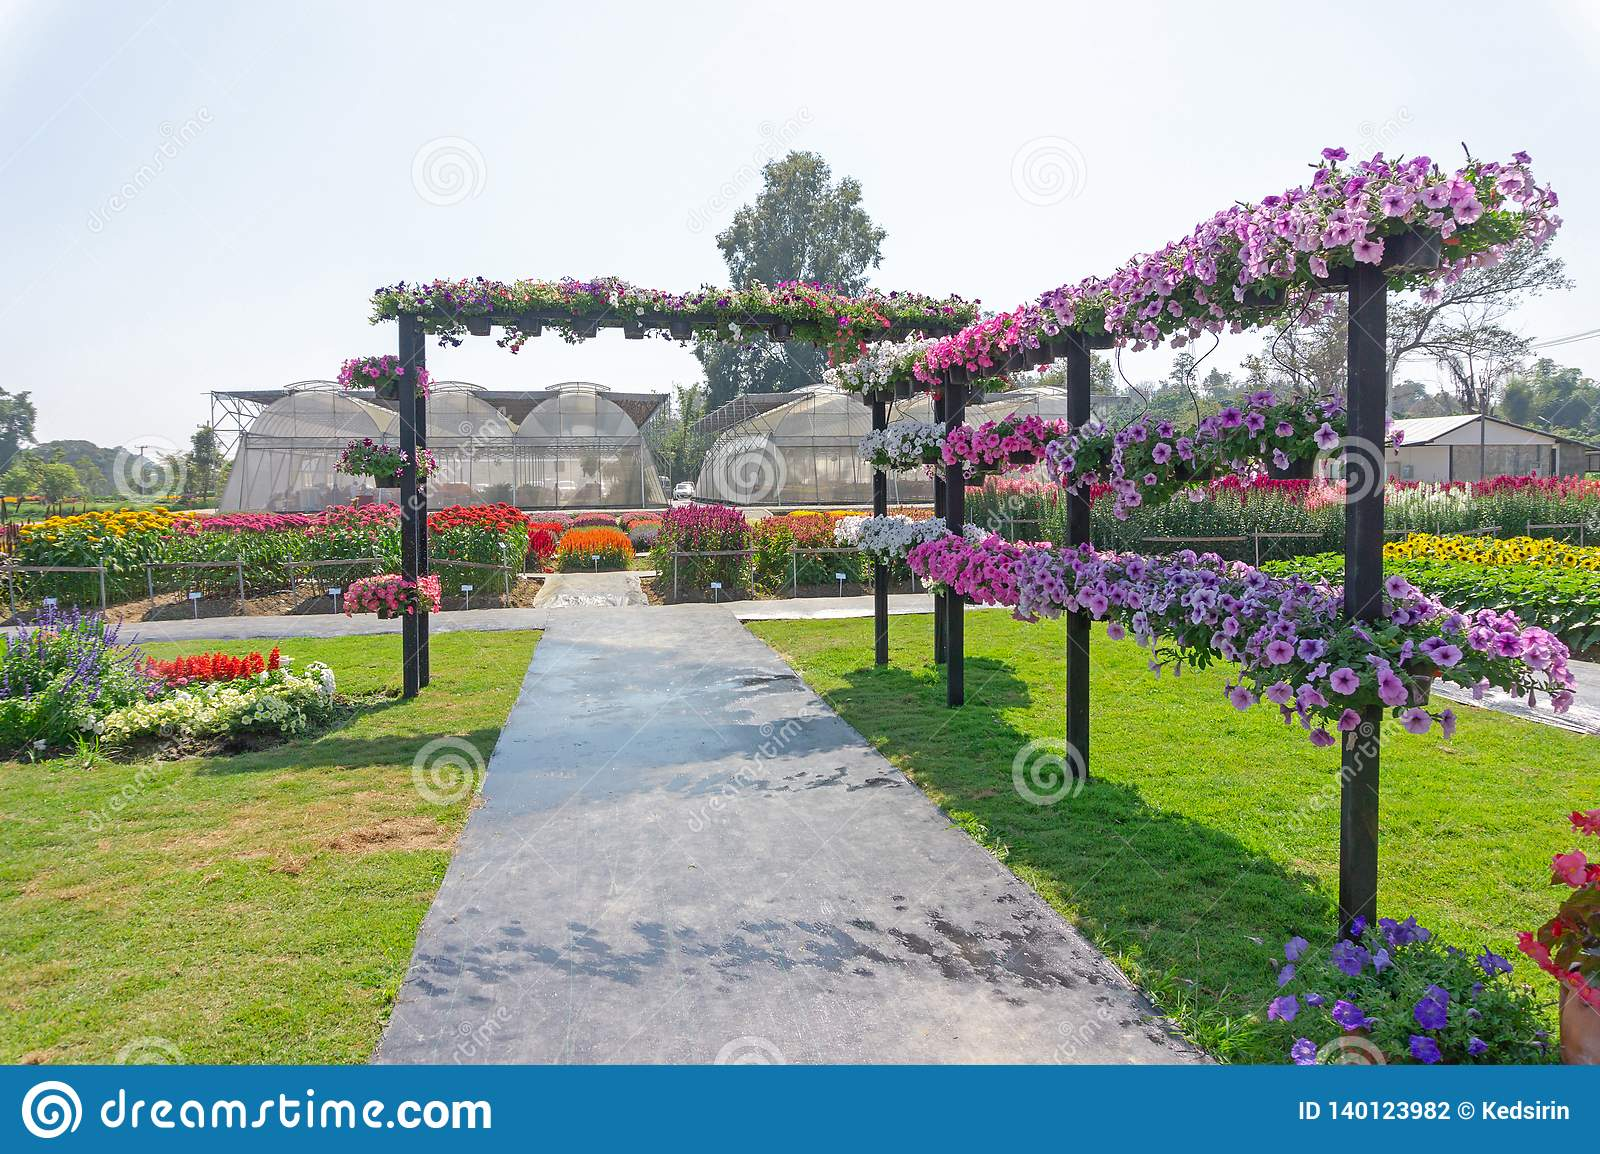 Colorful Flower In Outdoor Garden Designs Stock Photo Image Of